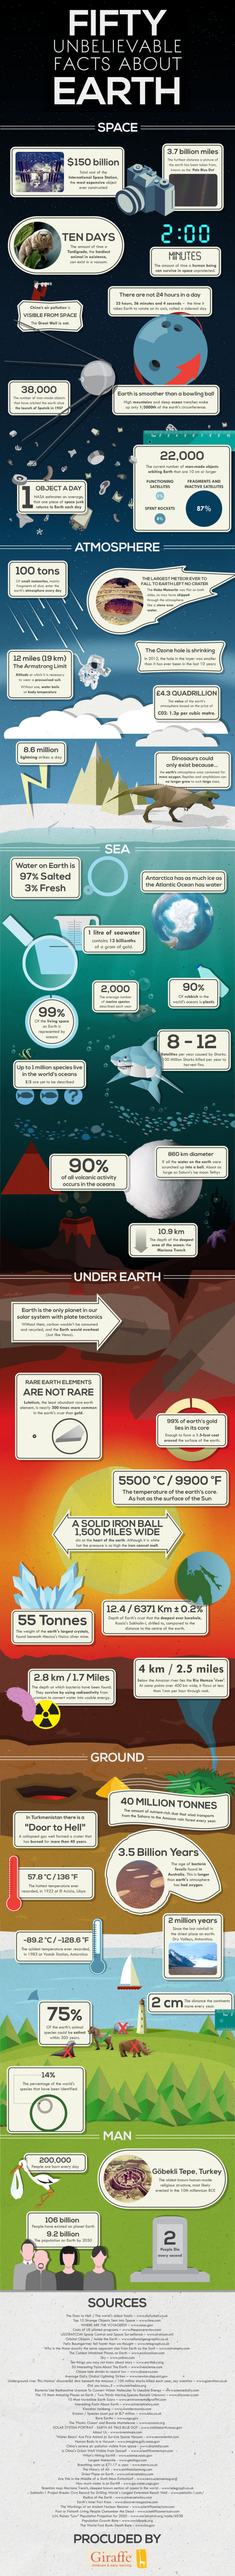 Fifty Unbelievable Facts About Earth